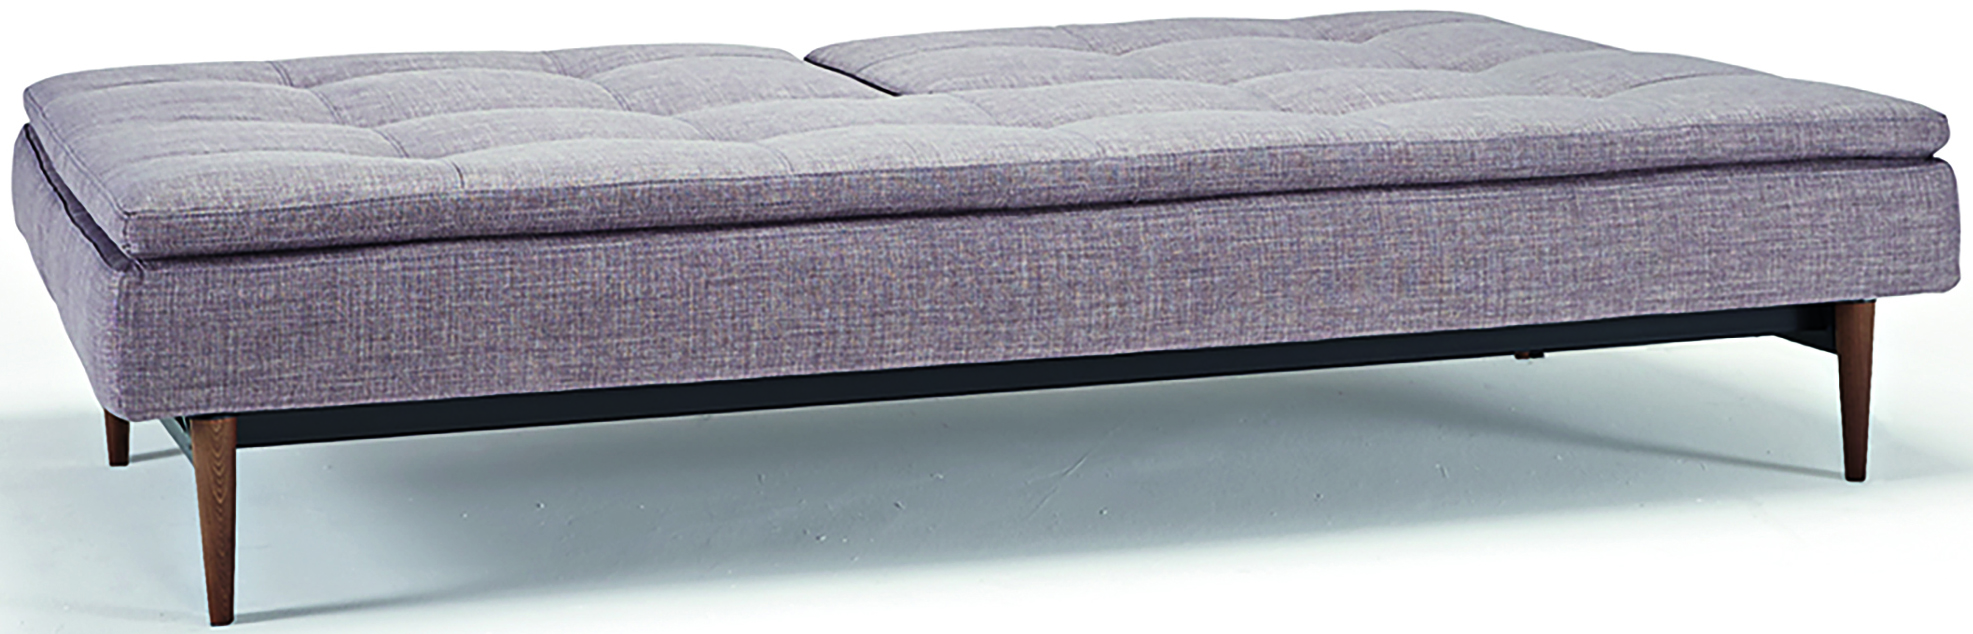 the dublexo sofa in begum grey